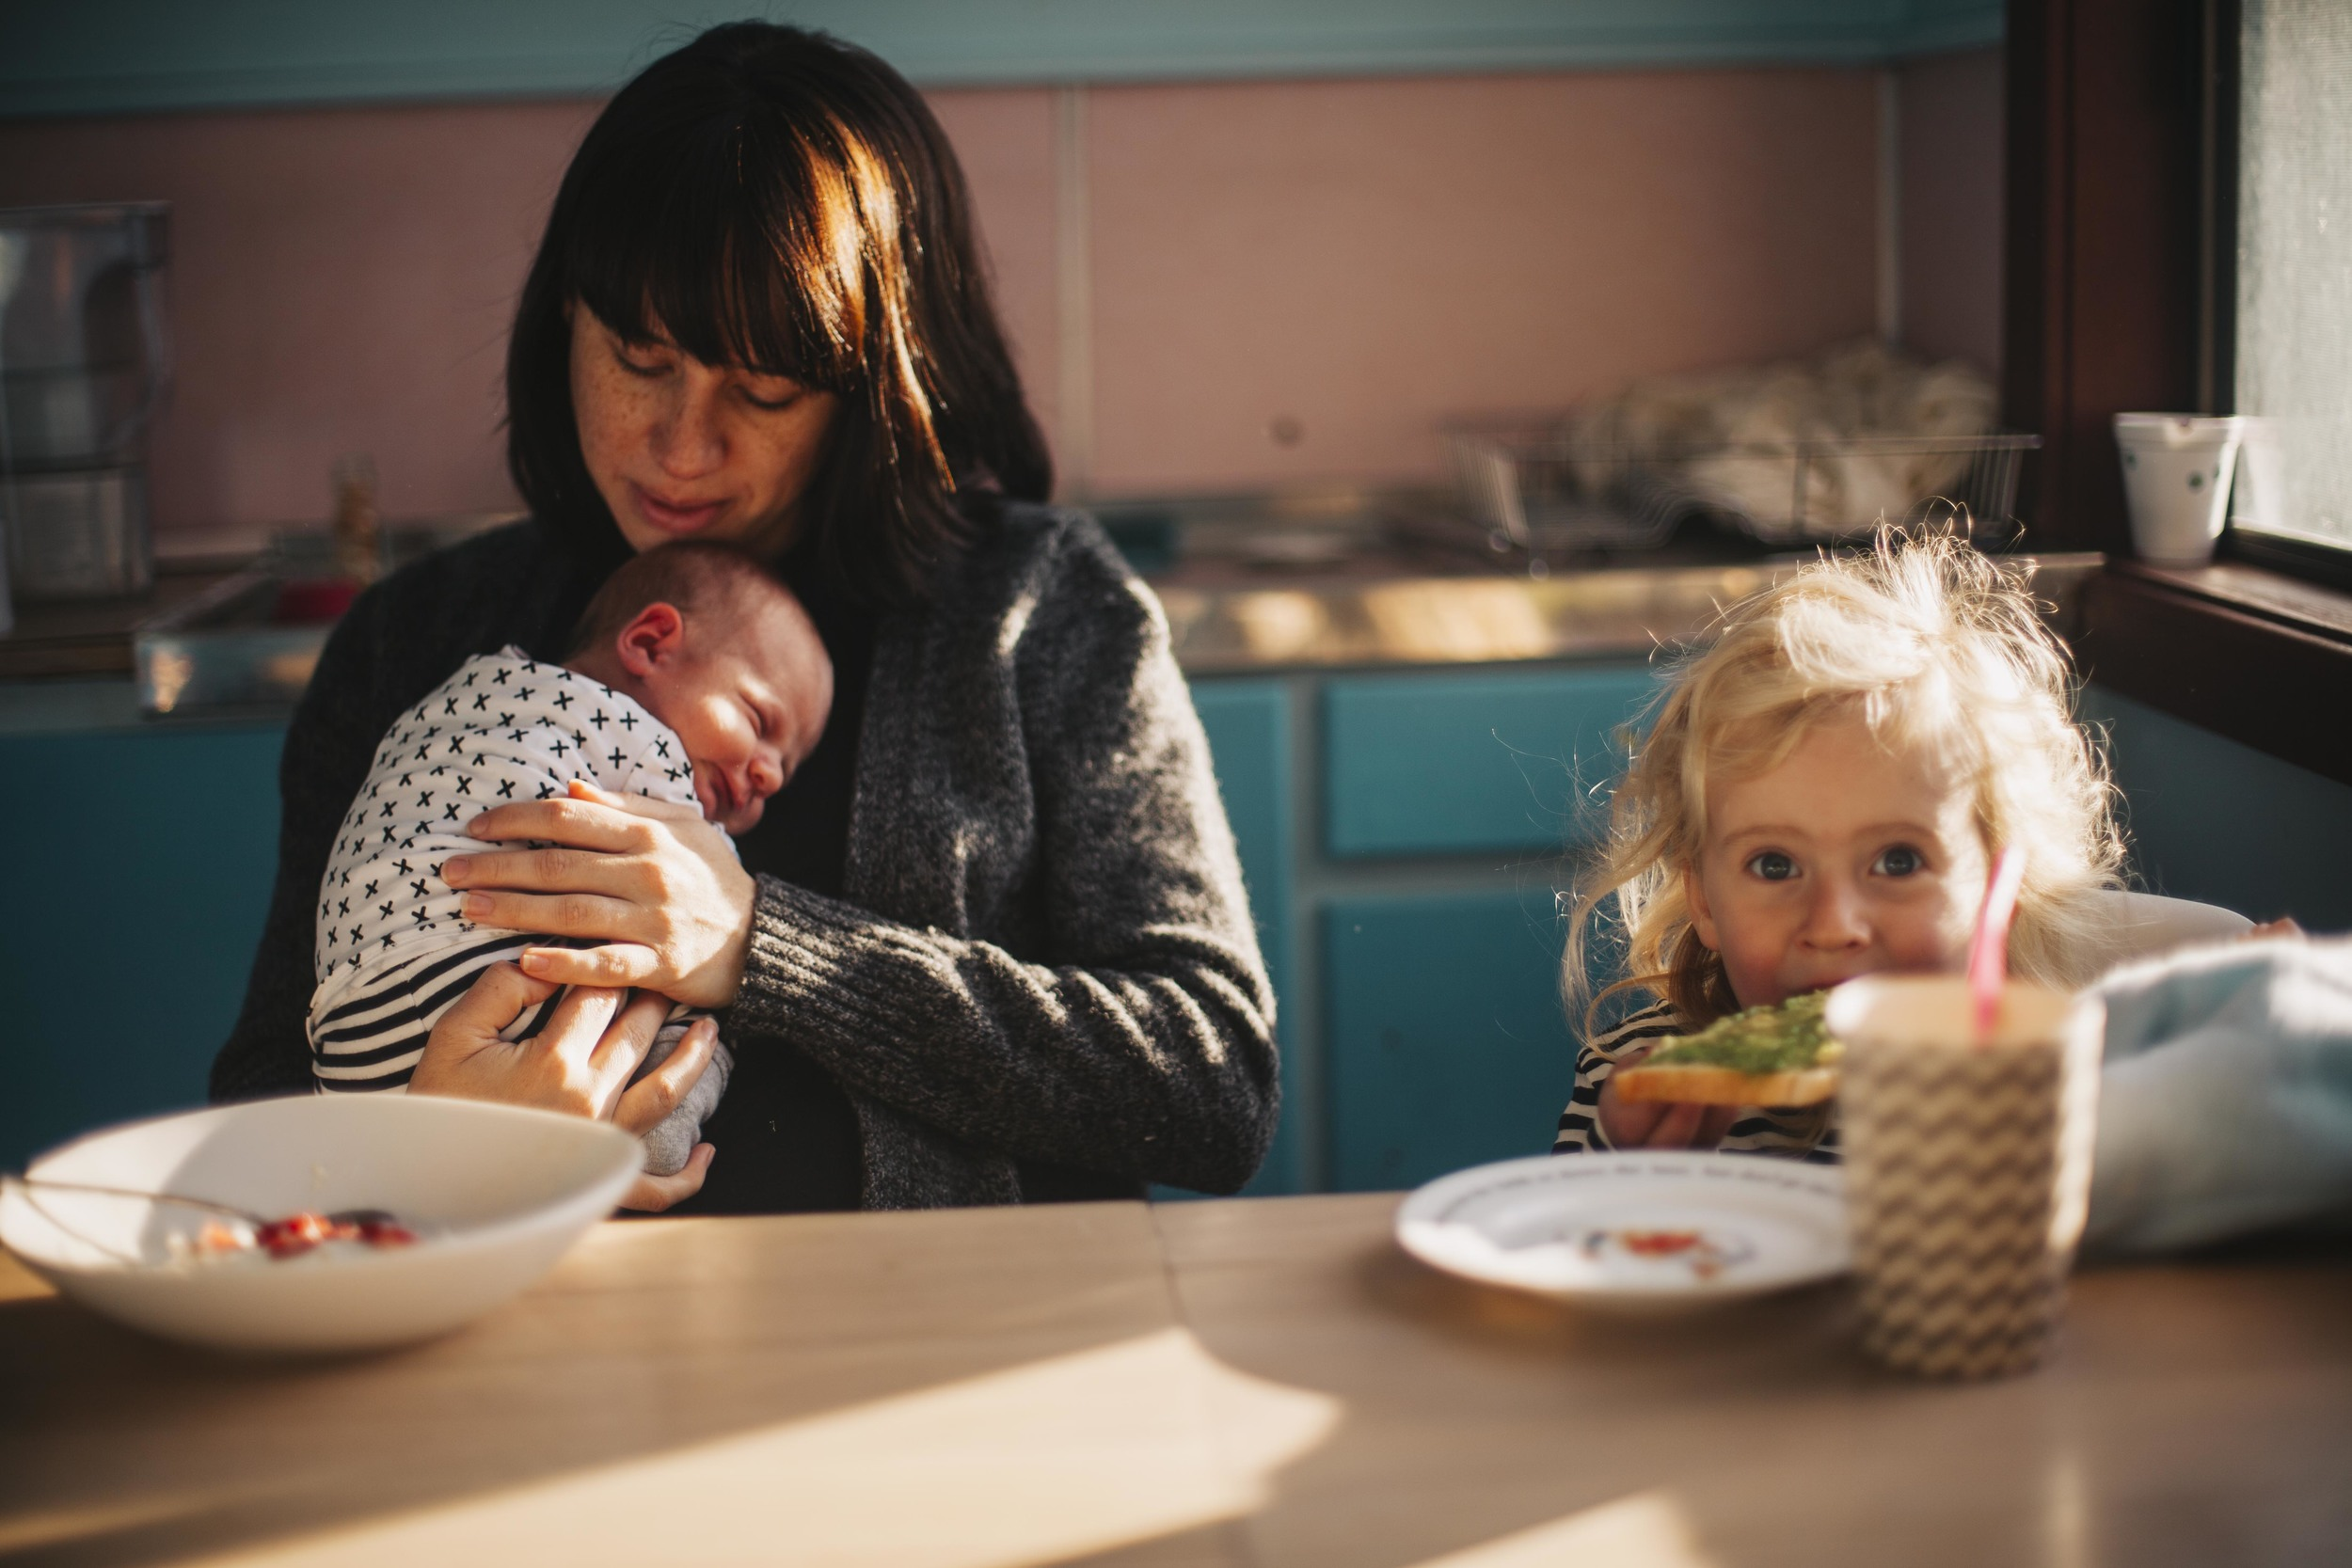 mother holding newborn baby while daughter eats toast at kitchen table